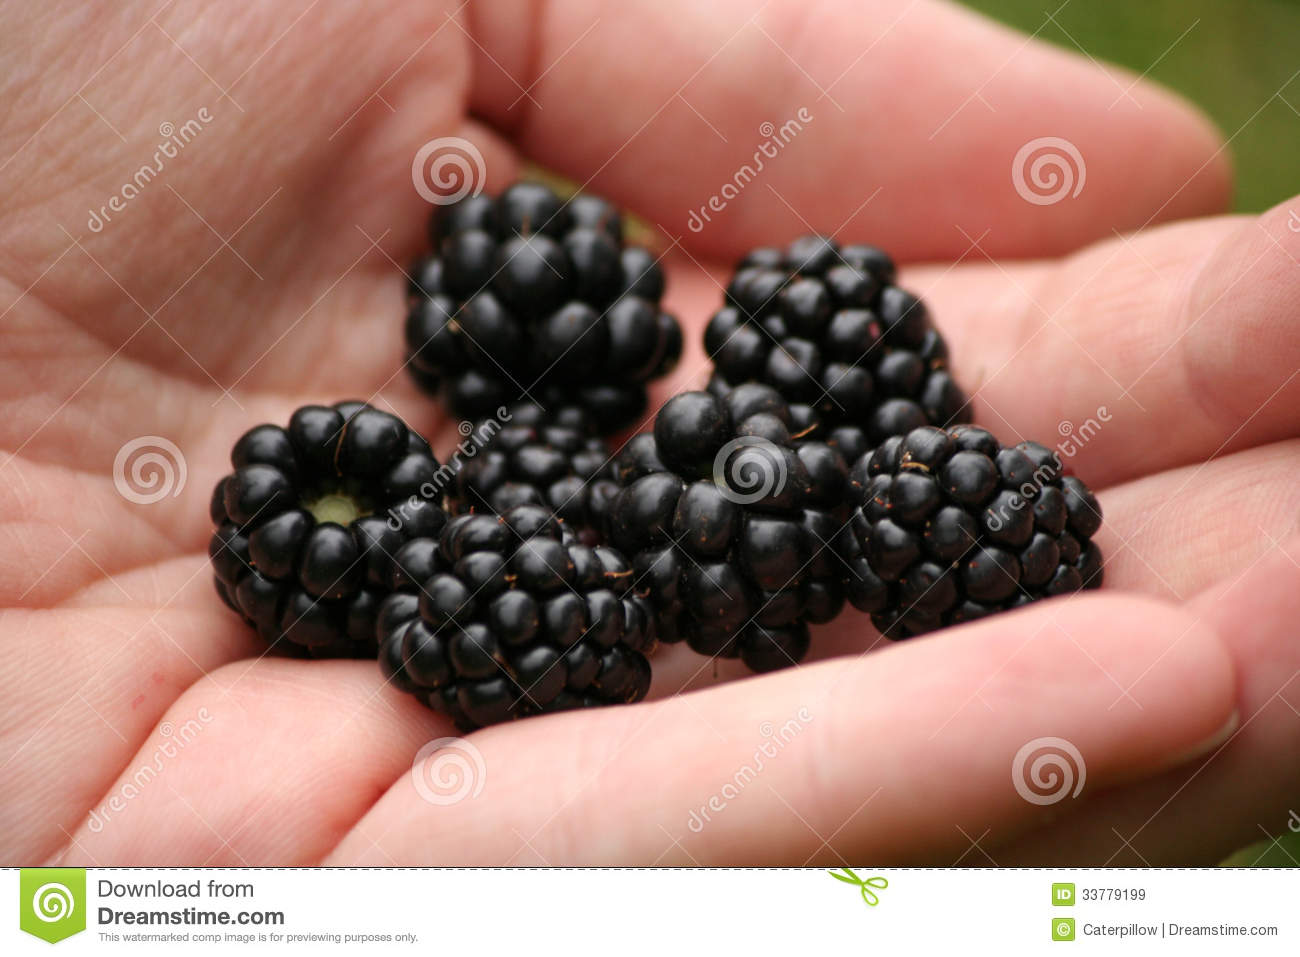 Palmful Of Blackberries Stock Image Culture